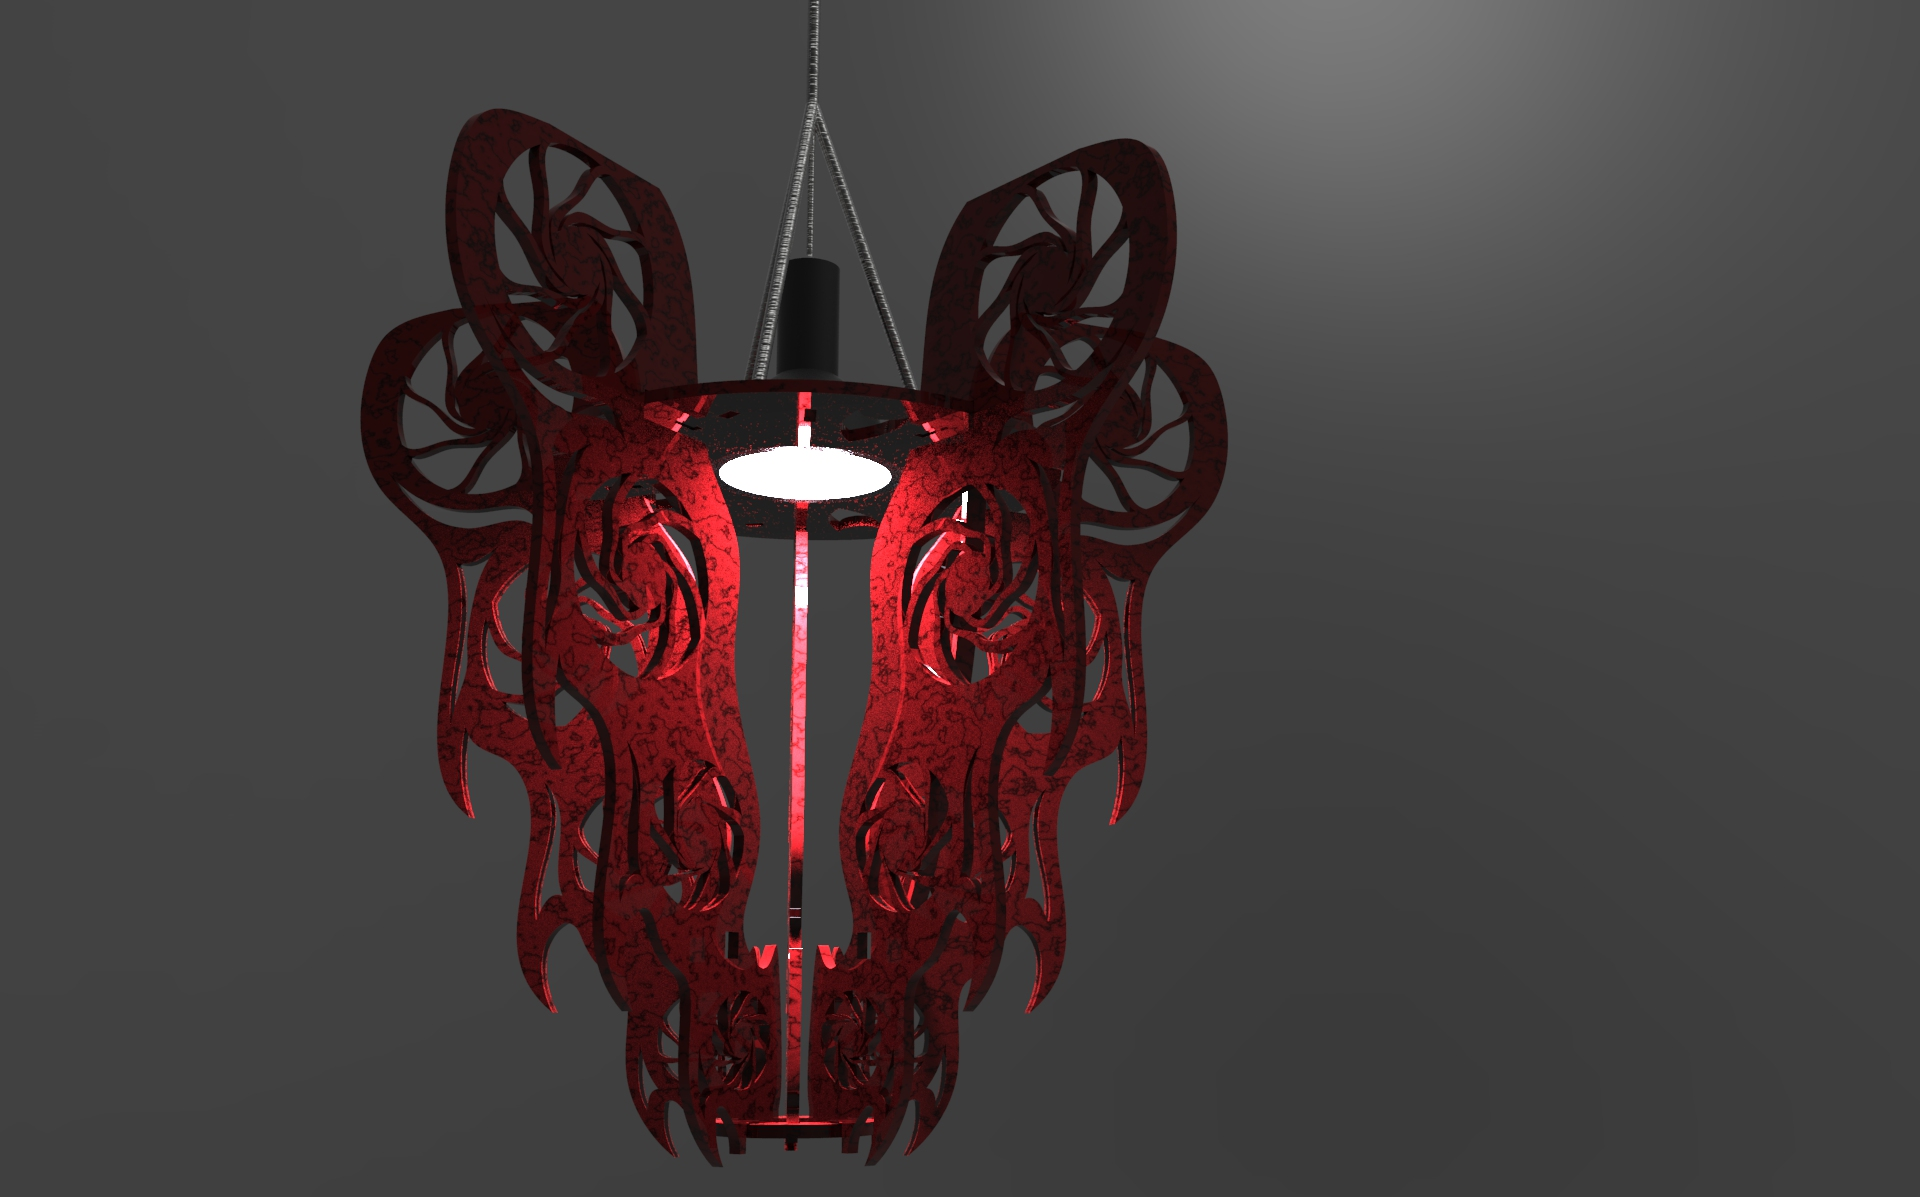 Final render red with black viens